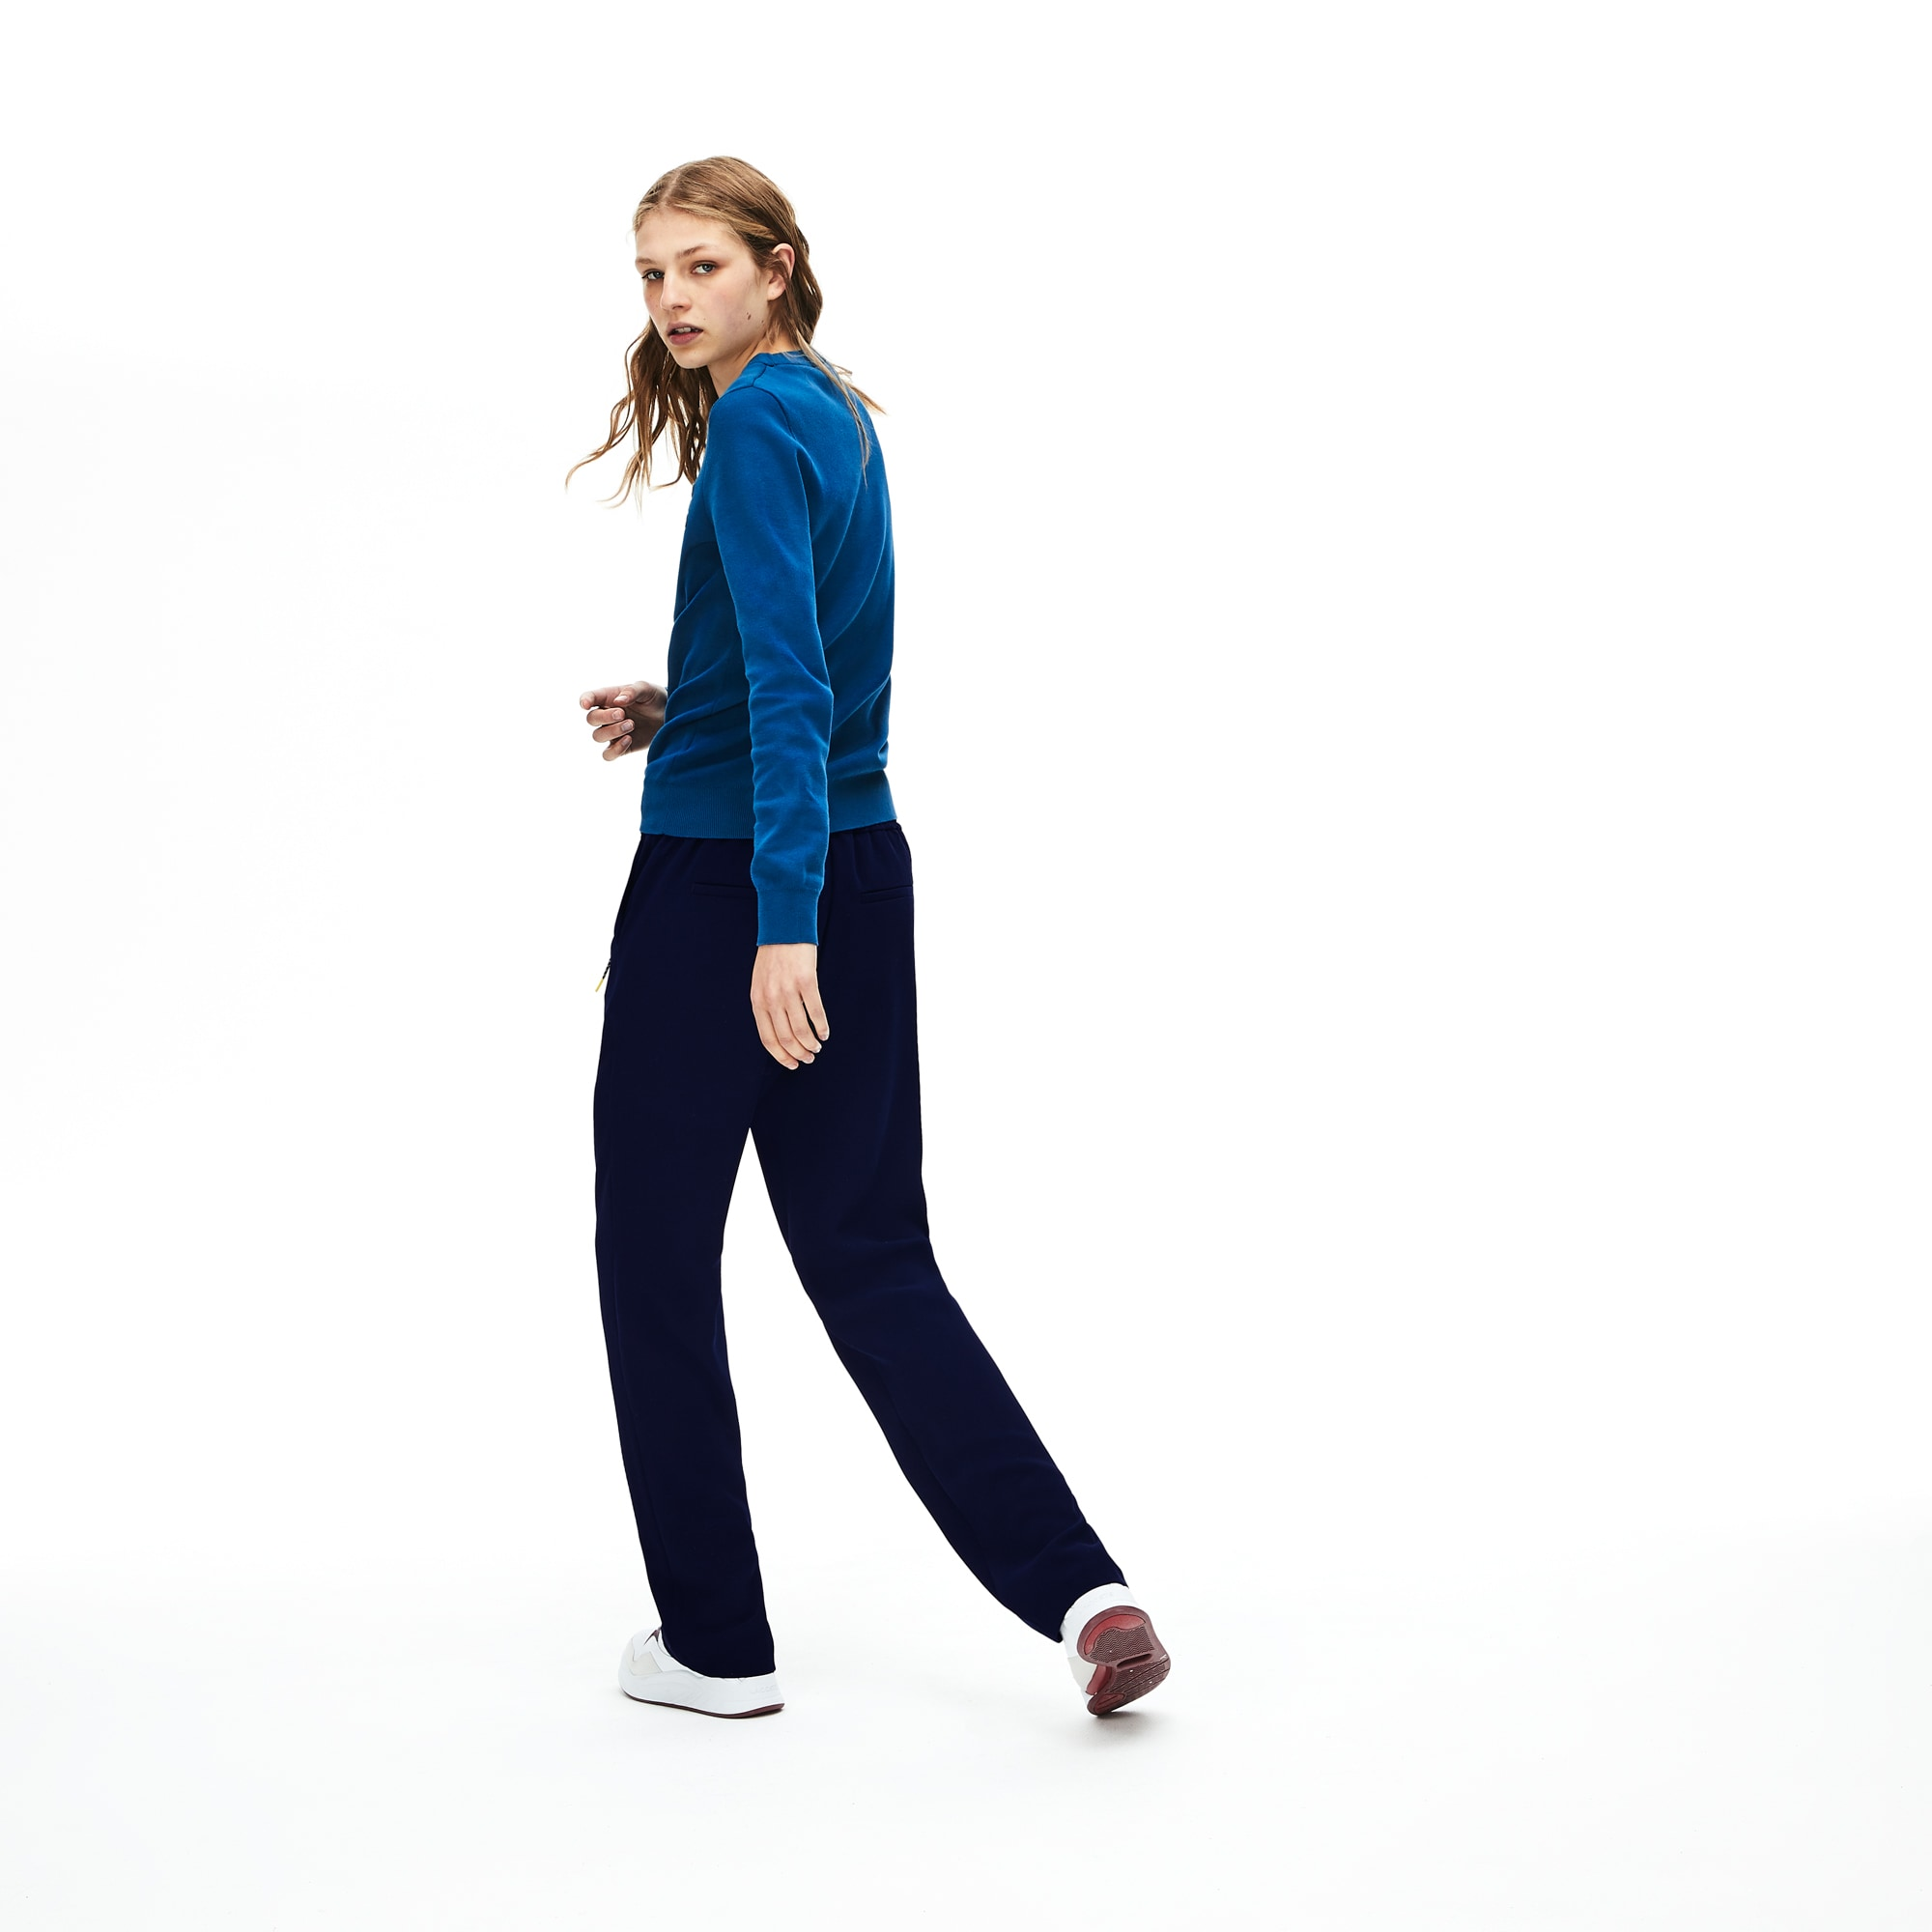 Women's Ridged Twill Pull-On Sweatpants